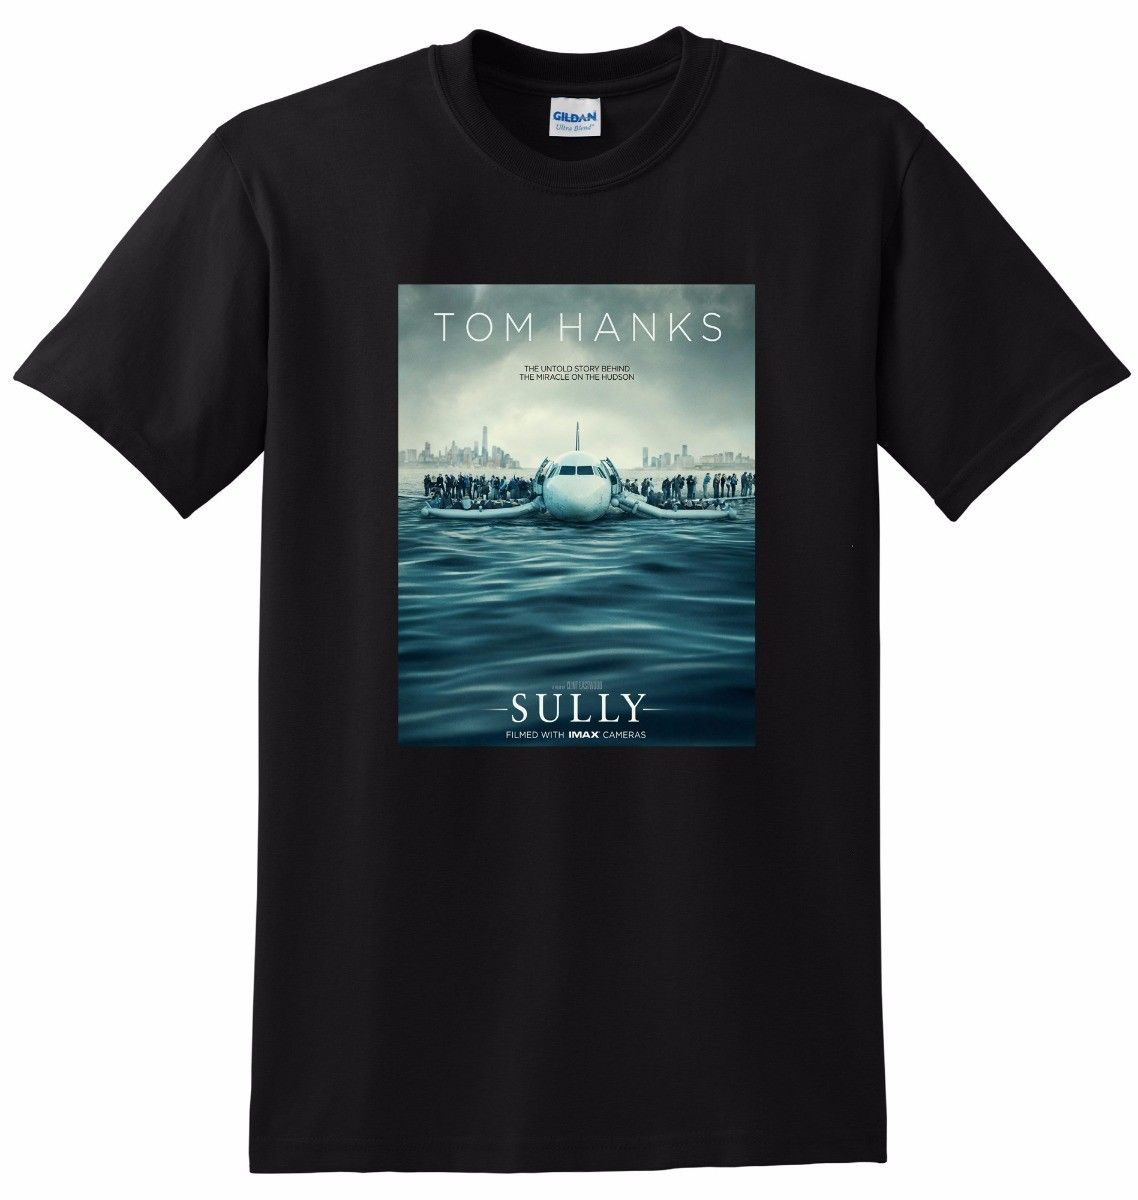 SULLY T SHIRT 2016 tom hanks movie poster tee SMALL MEDIUM LARGE or XXXL O-Neck Fashion Casual High Quality Print T Shirt image